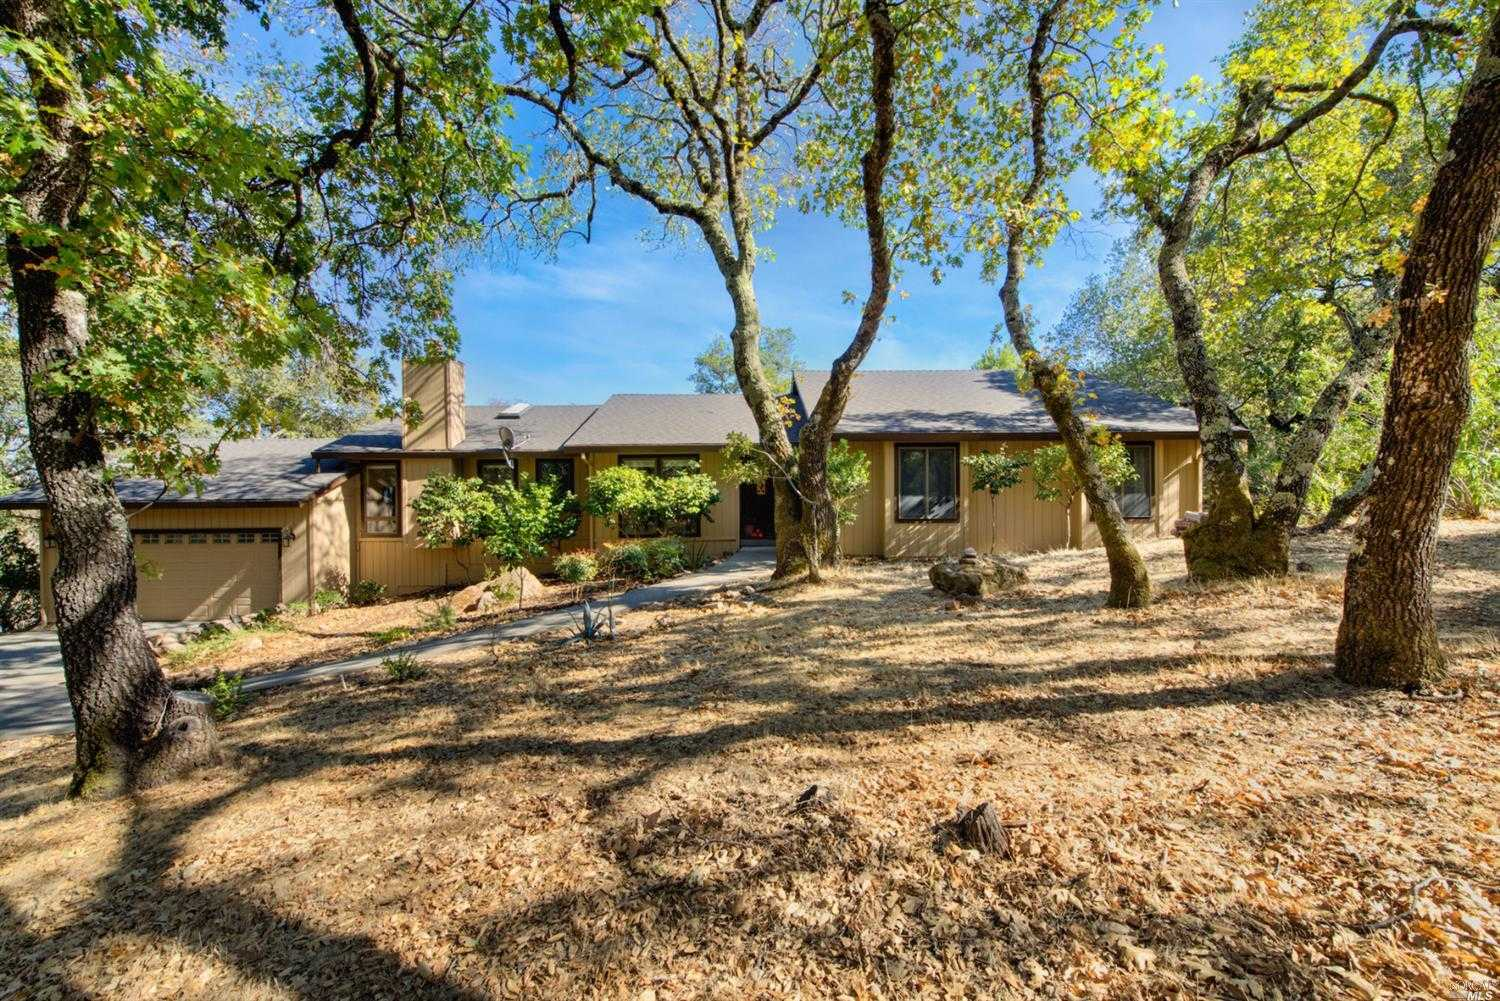 $859,000 - 3Br/2Ba -  for Sale in Green Valley Highlan, Fairfield